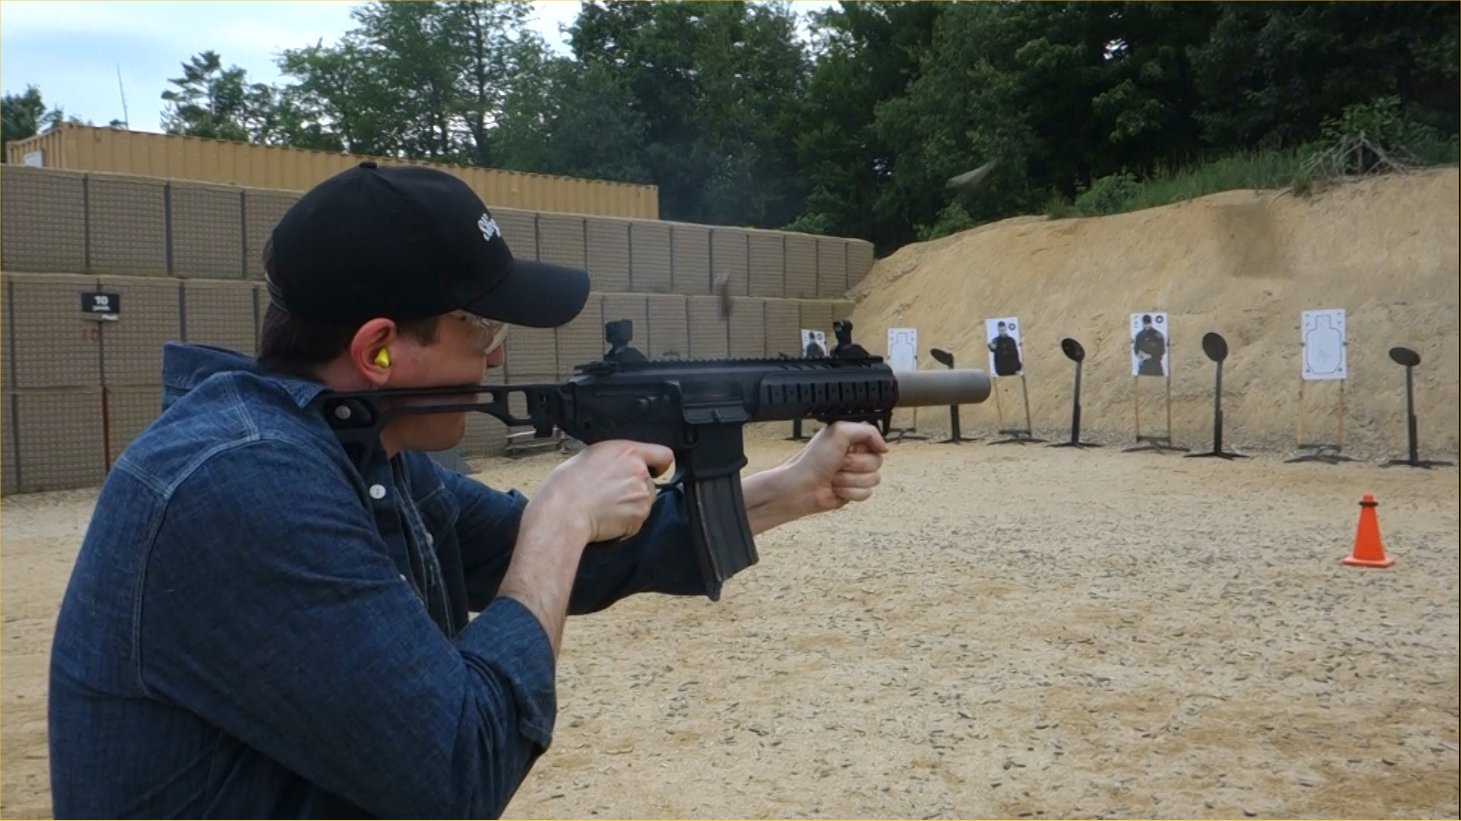 SIG SAUER SIG MCX Multi Caliber AR Assault Rifle Carbine SBR 300 Blackout 300BLK Suppressed David Crane Firing on Full Auto SIG SAUER New Media Writers Event DefenseReview.com DR 2 SIG MCX LVAW (Low Visibility Assault Weapon) Black Mamba Suppressed 300 Blackout (300BLK) Piston AR Assault SBR/PDW (Short Barreled Rifle/Personal Defense Weapon) Fired on Full Auto and Semi Auto with Subsonic and Supersonic Ammo During SIG SAUER New Media Writers Event (Video!)